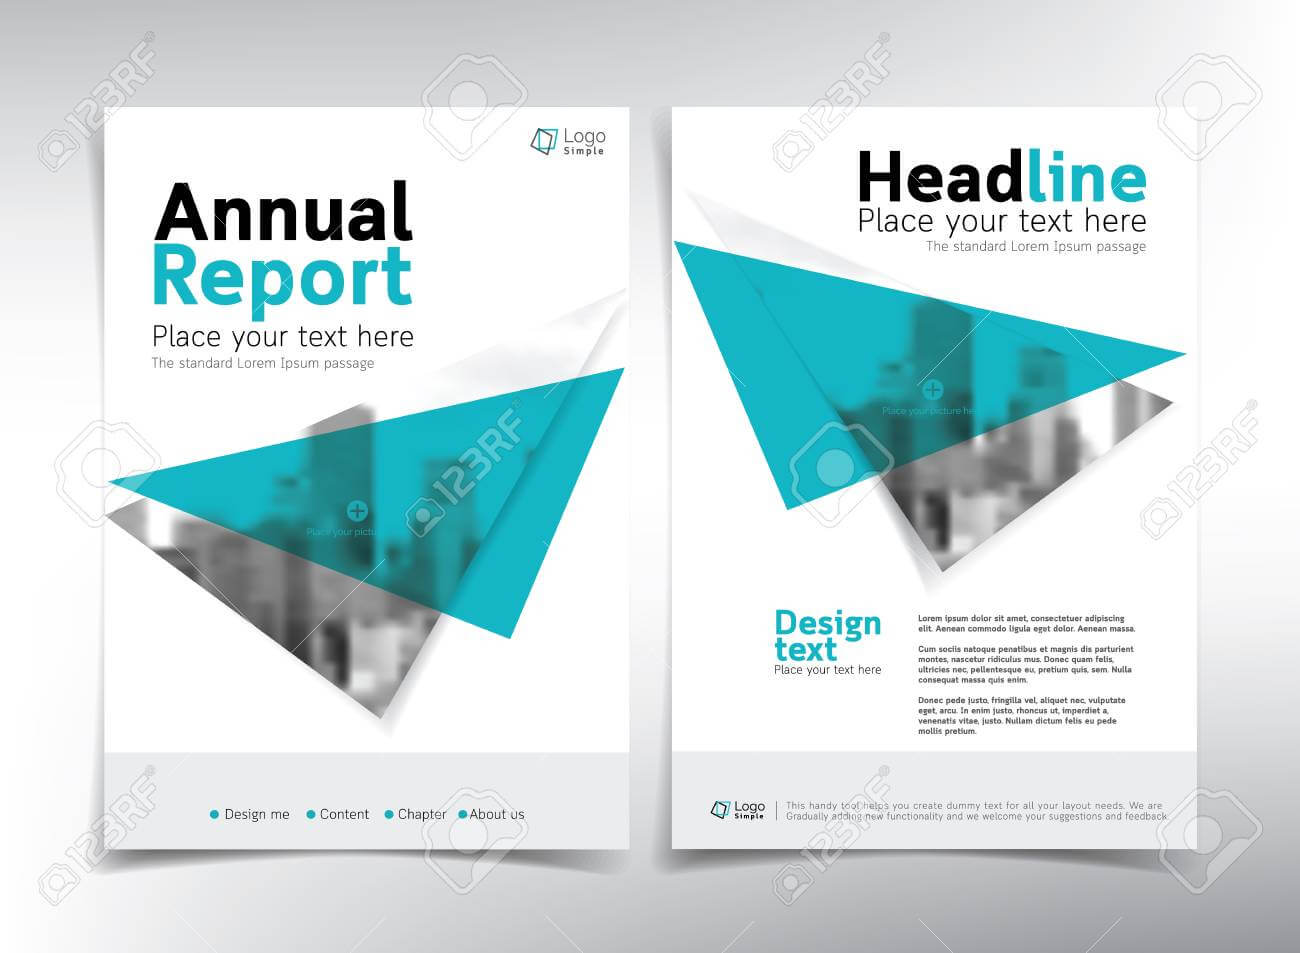 Minimalist Business Cover Page, Vector Template - Can Be Used.. pertaining to Cover Page For Annual Report Template